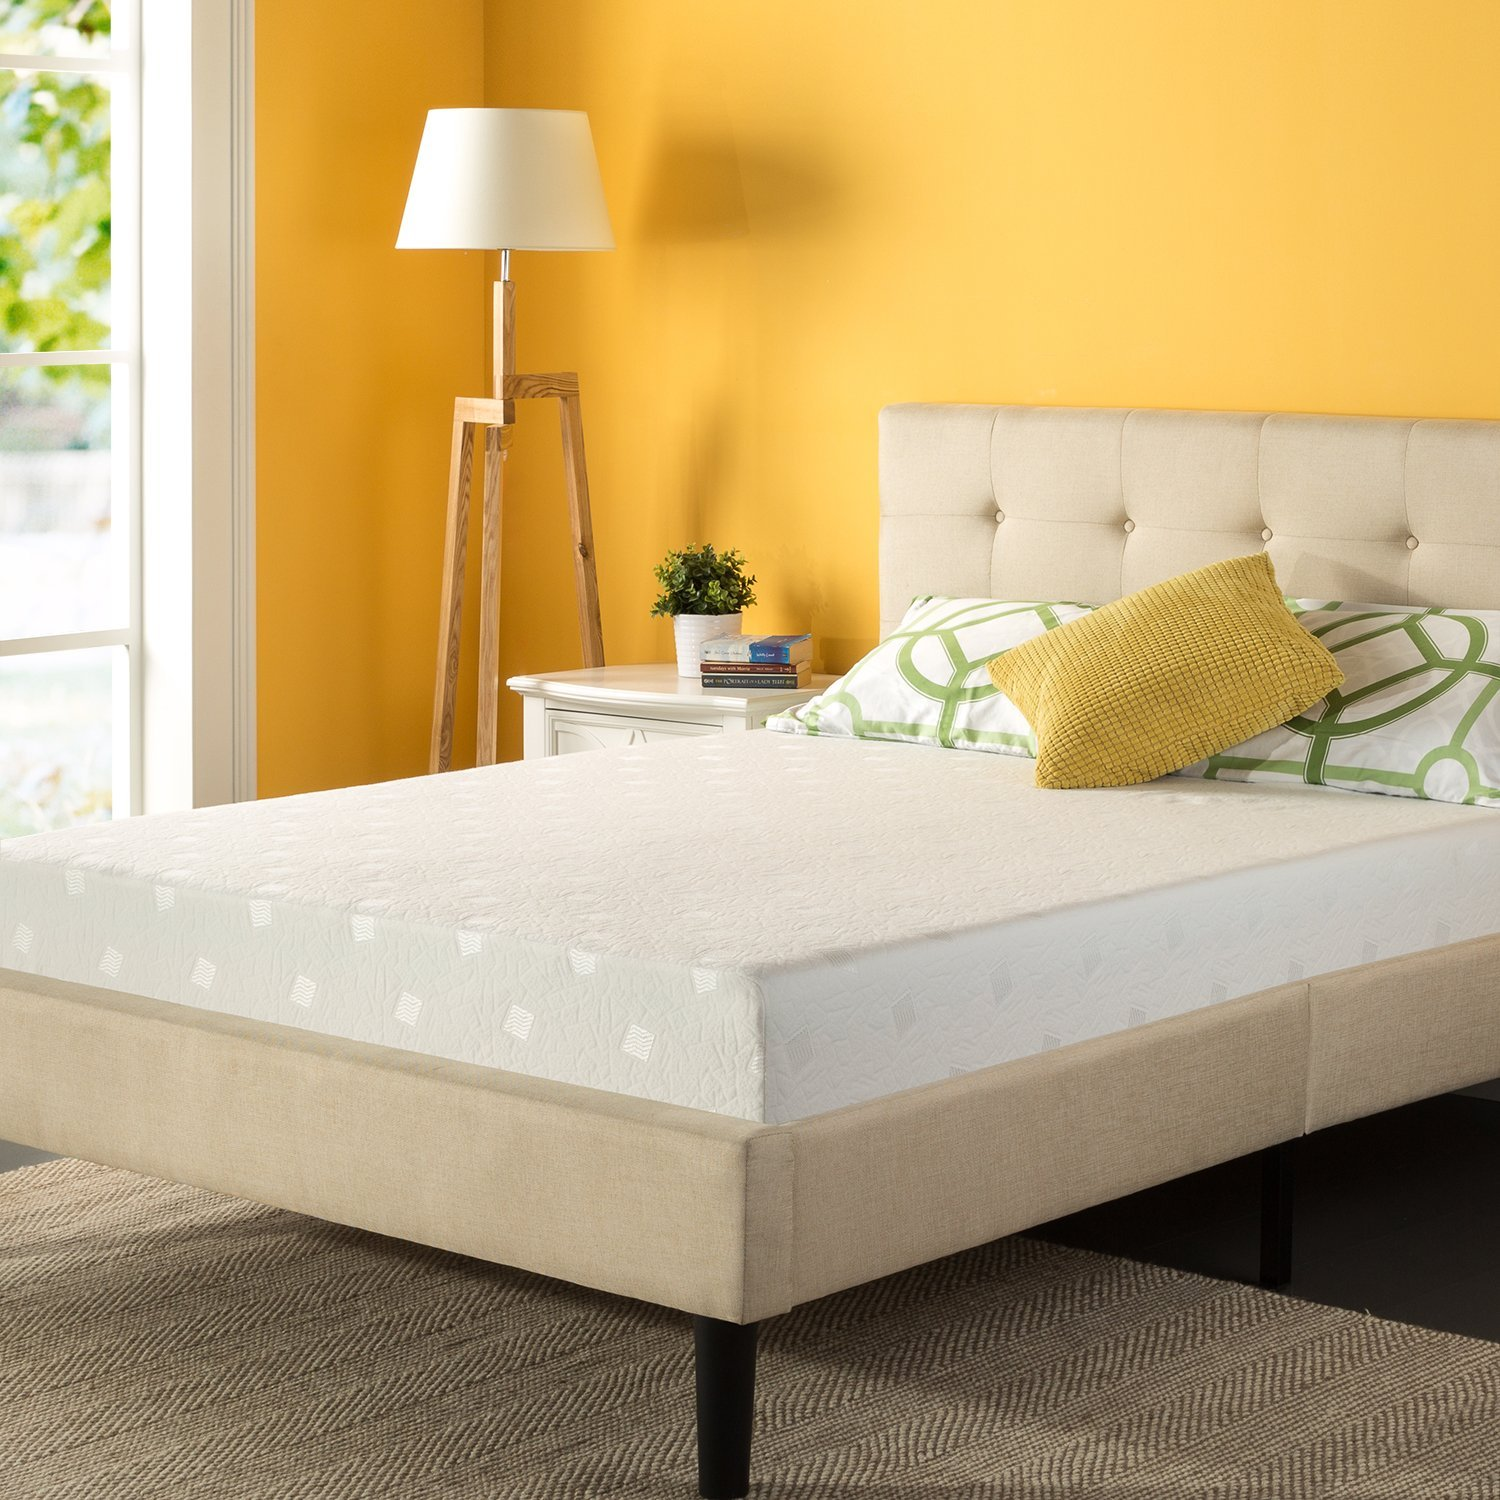 Inspirational King Inch Memory Foam Mattress Sleep Revolution Zinus with Free Shipping